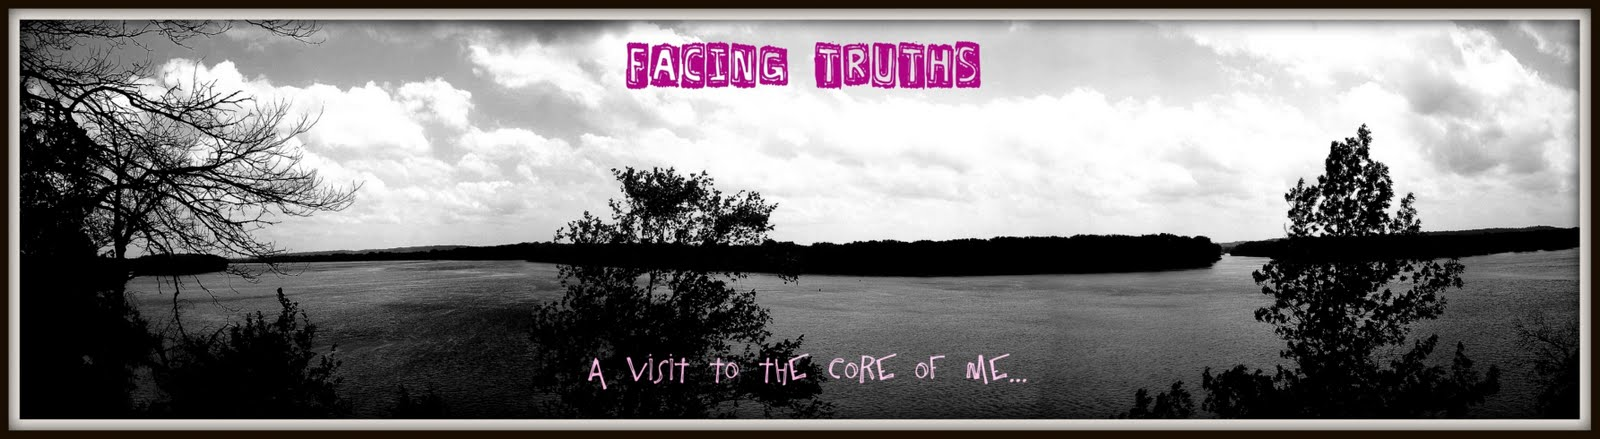 Facing Truths